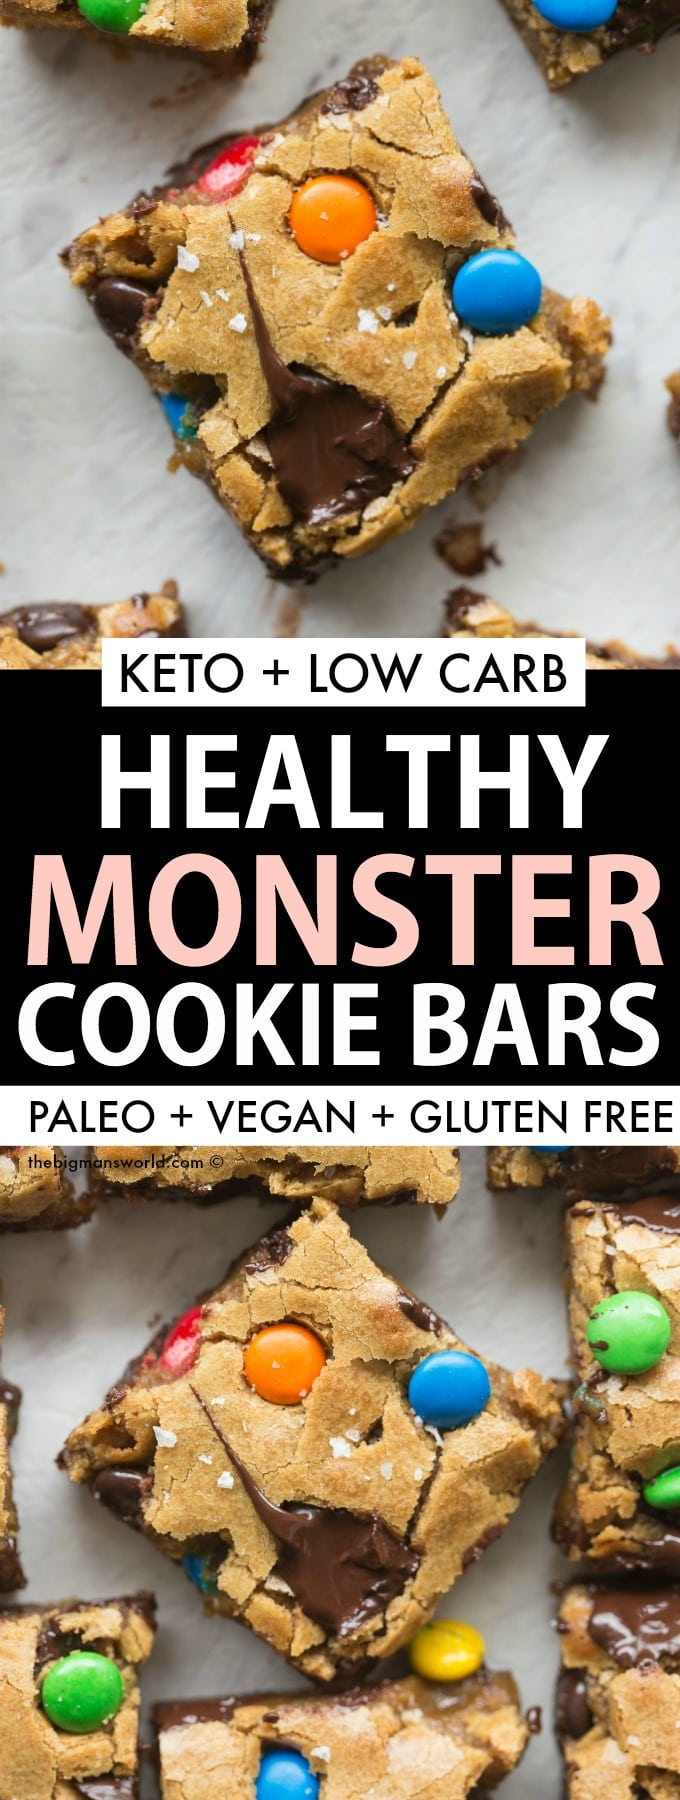 Healthy Monster Cookie Bars recipe with NO flour, NO peanut butter and NO sugar!